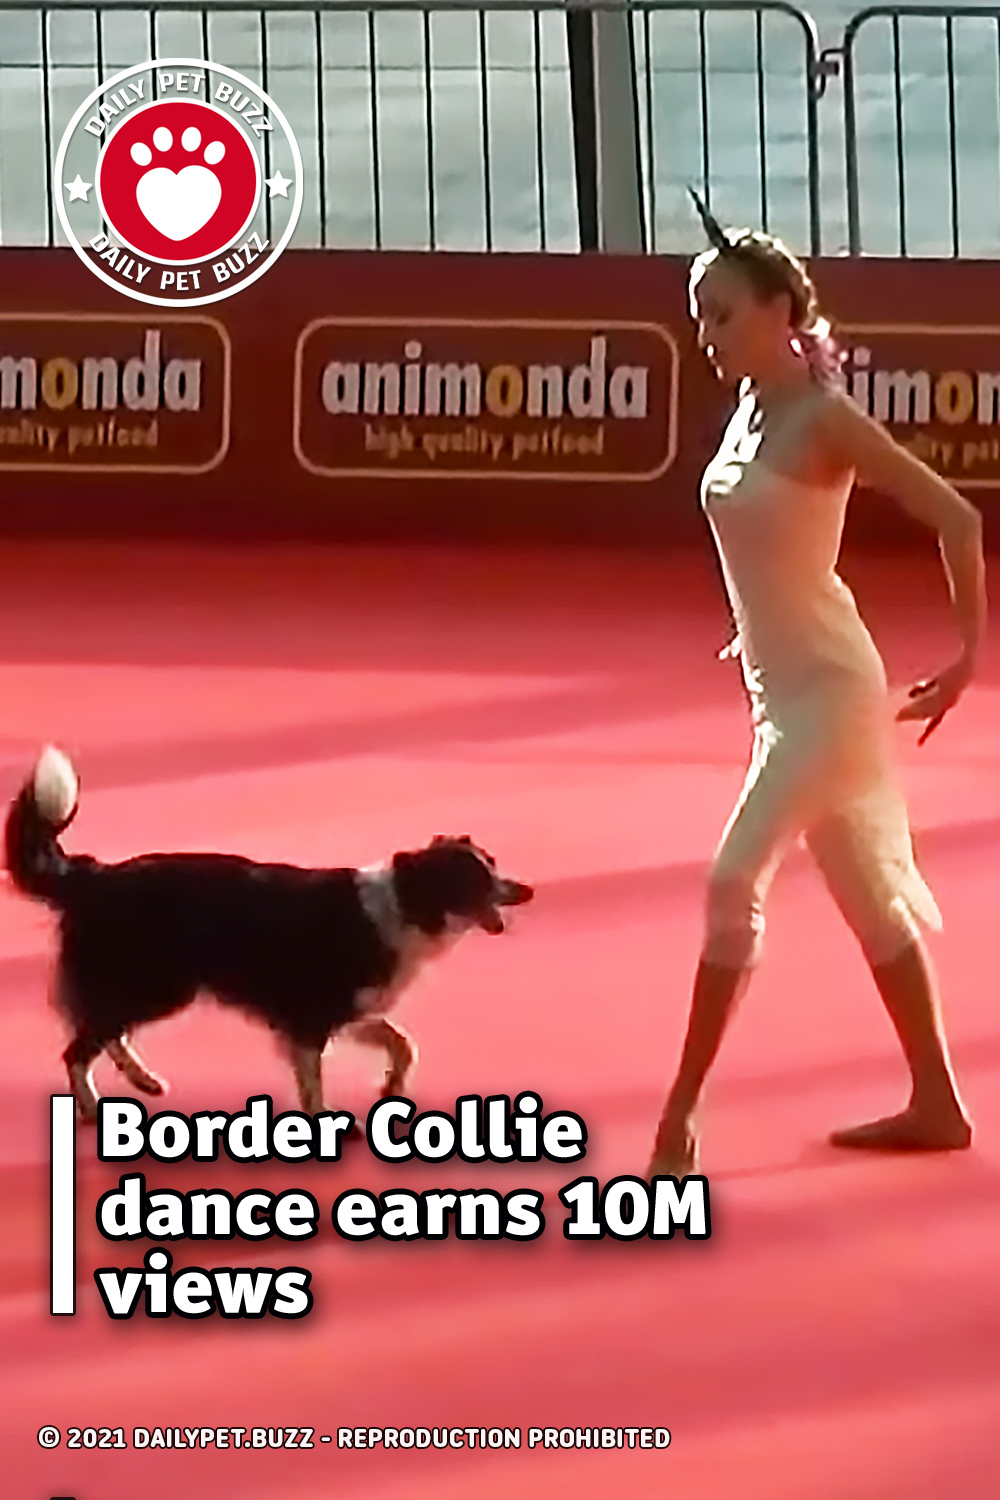 Border Collie dance earns 10M views